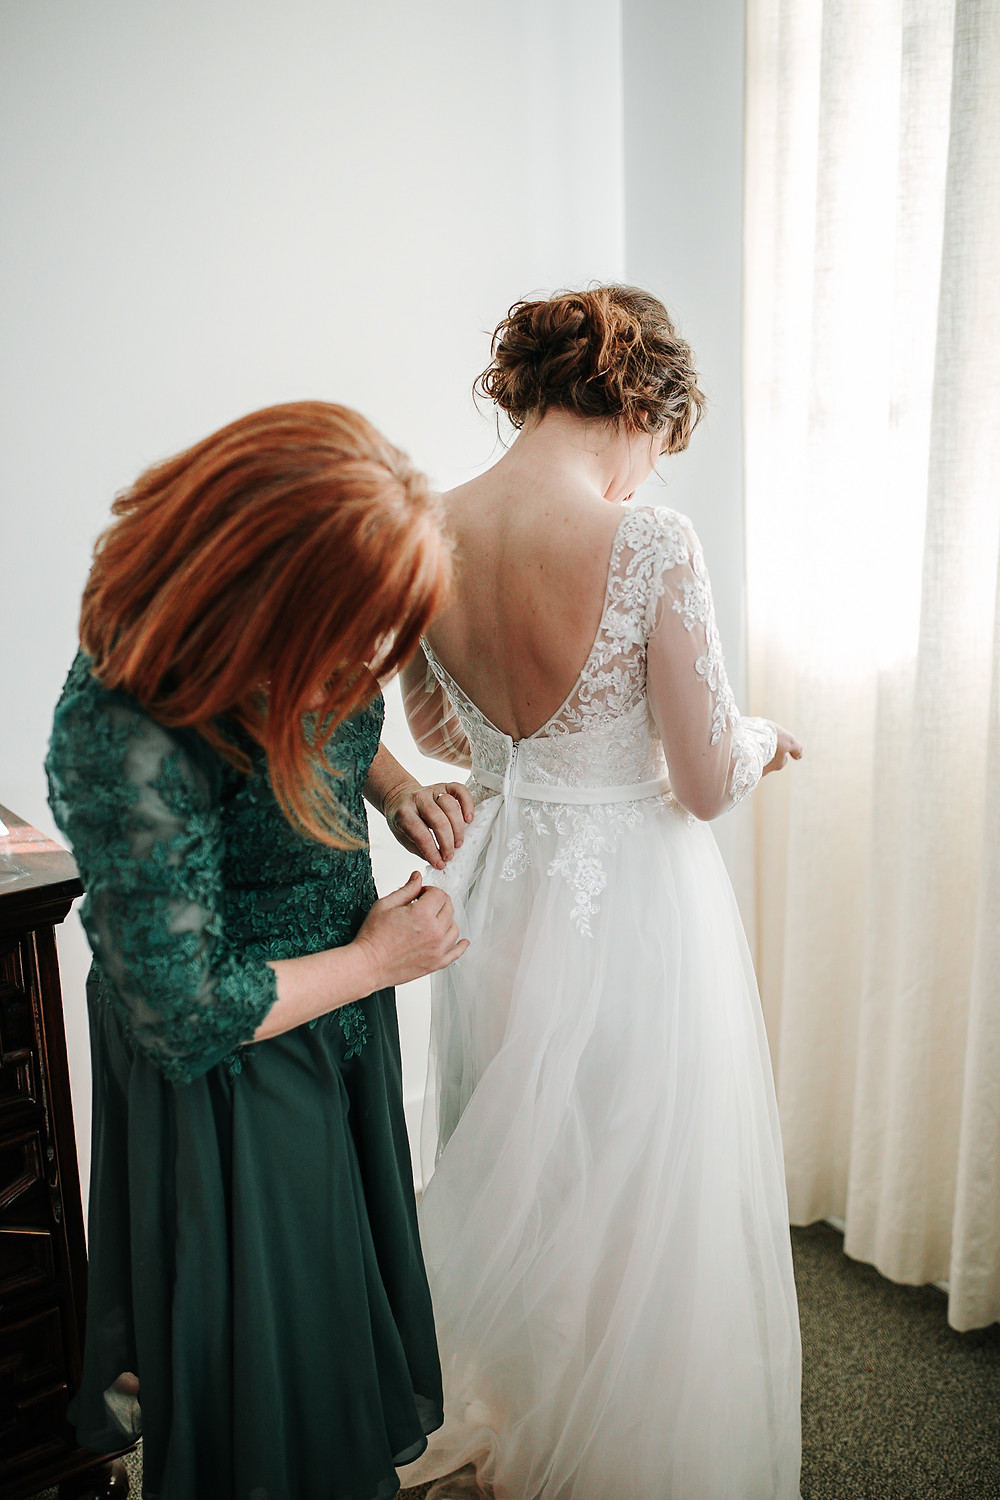 South Carolina wedding, getting ready photos